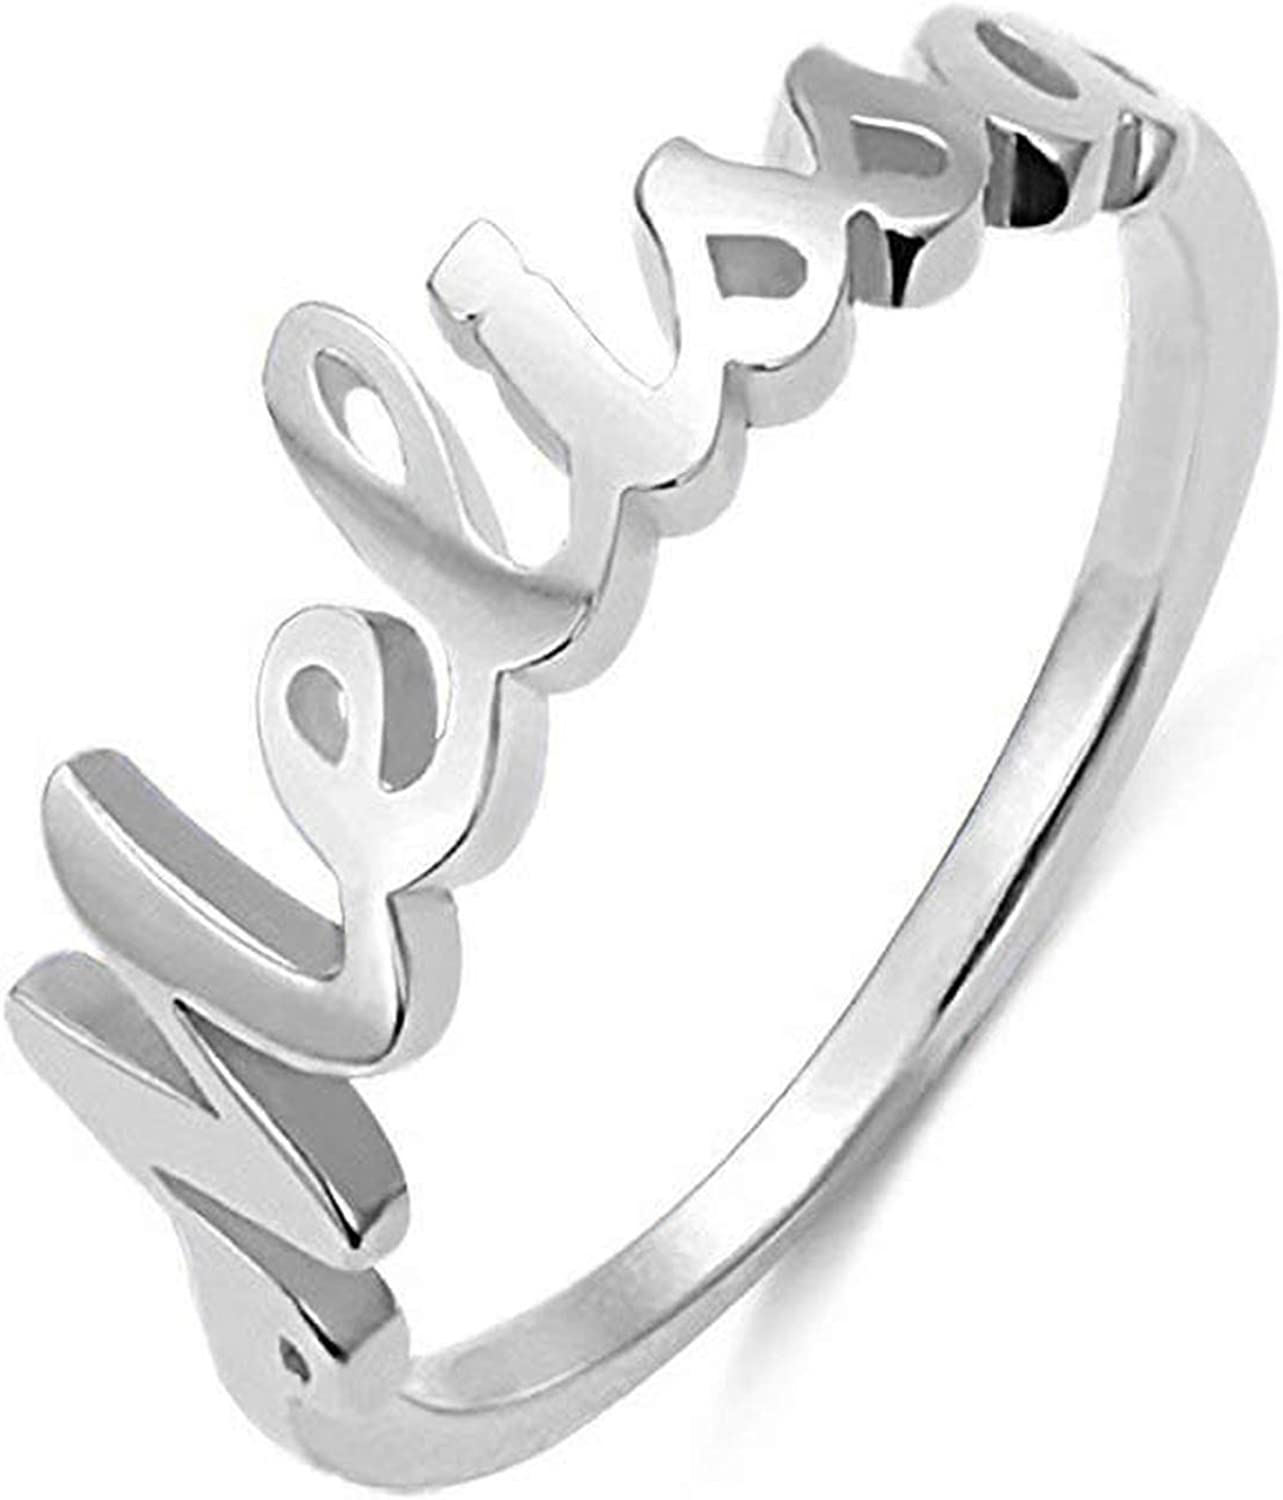 Allurelady Personalized Name Ring Sterling Silver Unisex Name Ring Custom Made with Any Name Promise Ring Jewelry Gift for Women